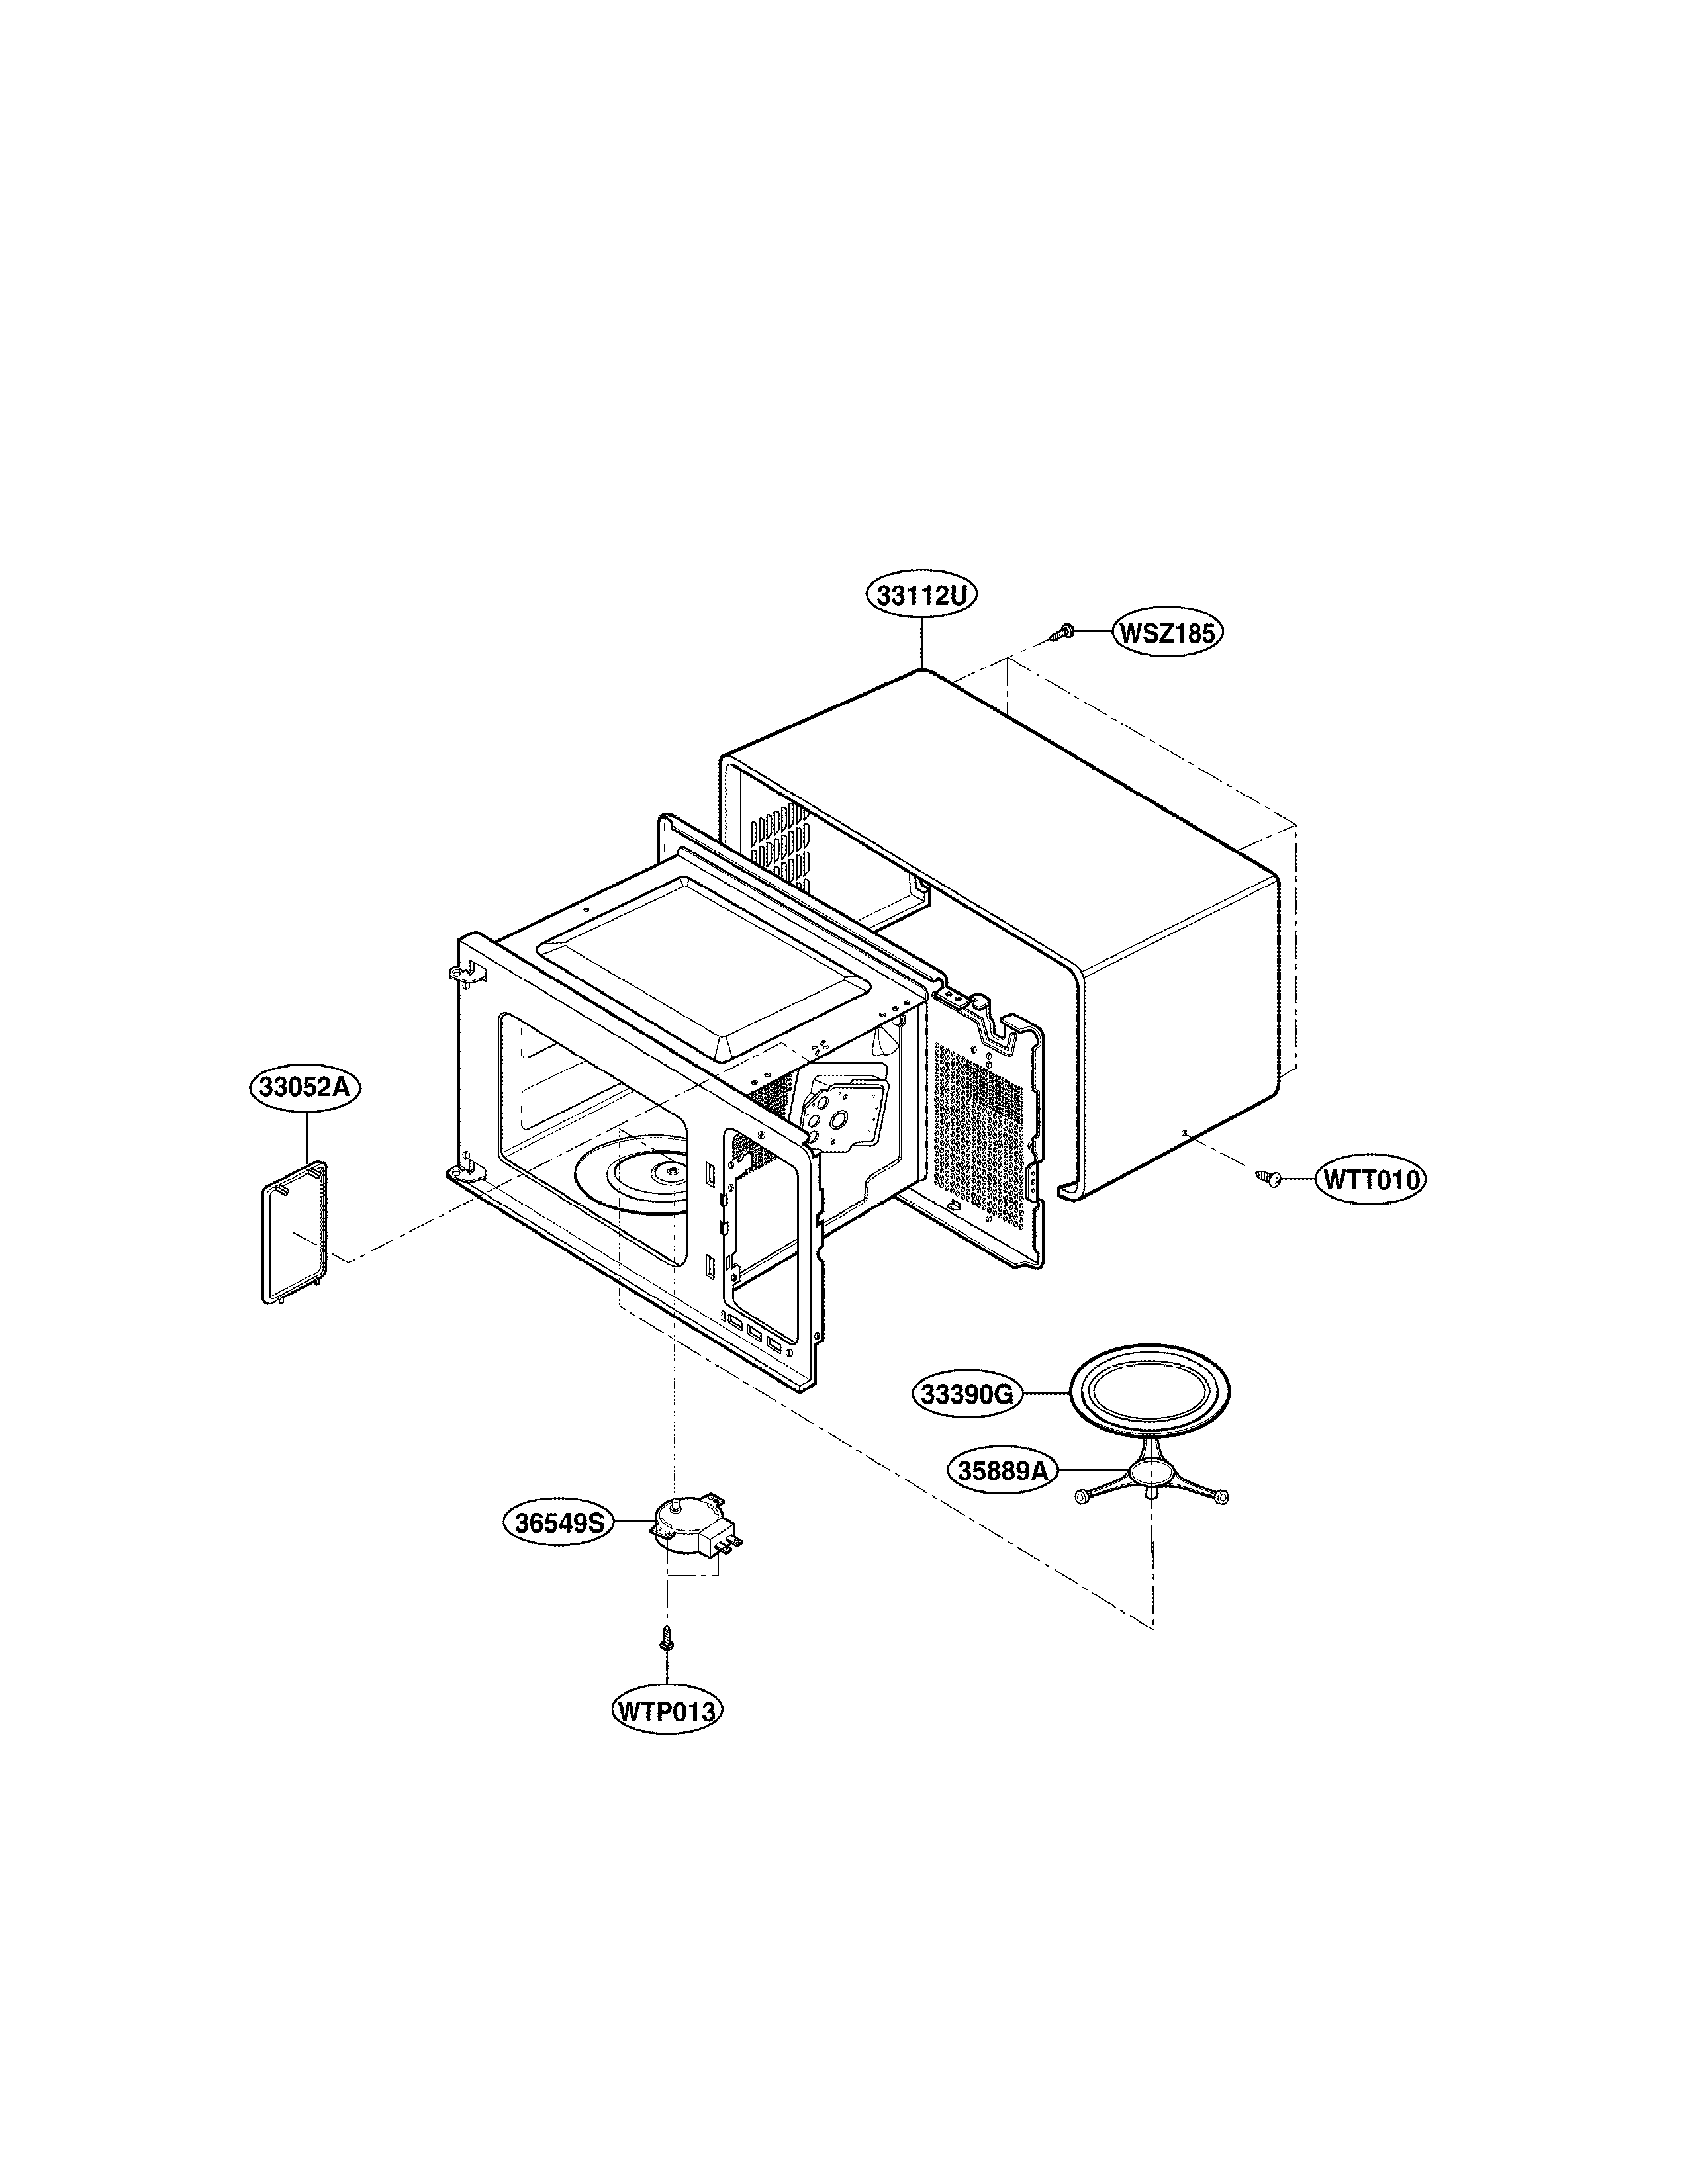 LG LMAB1240ST01 oven cavity parts diagram